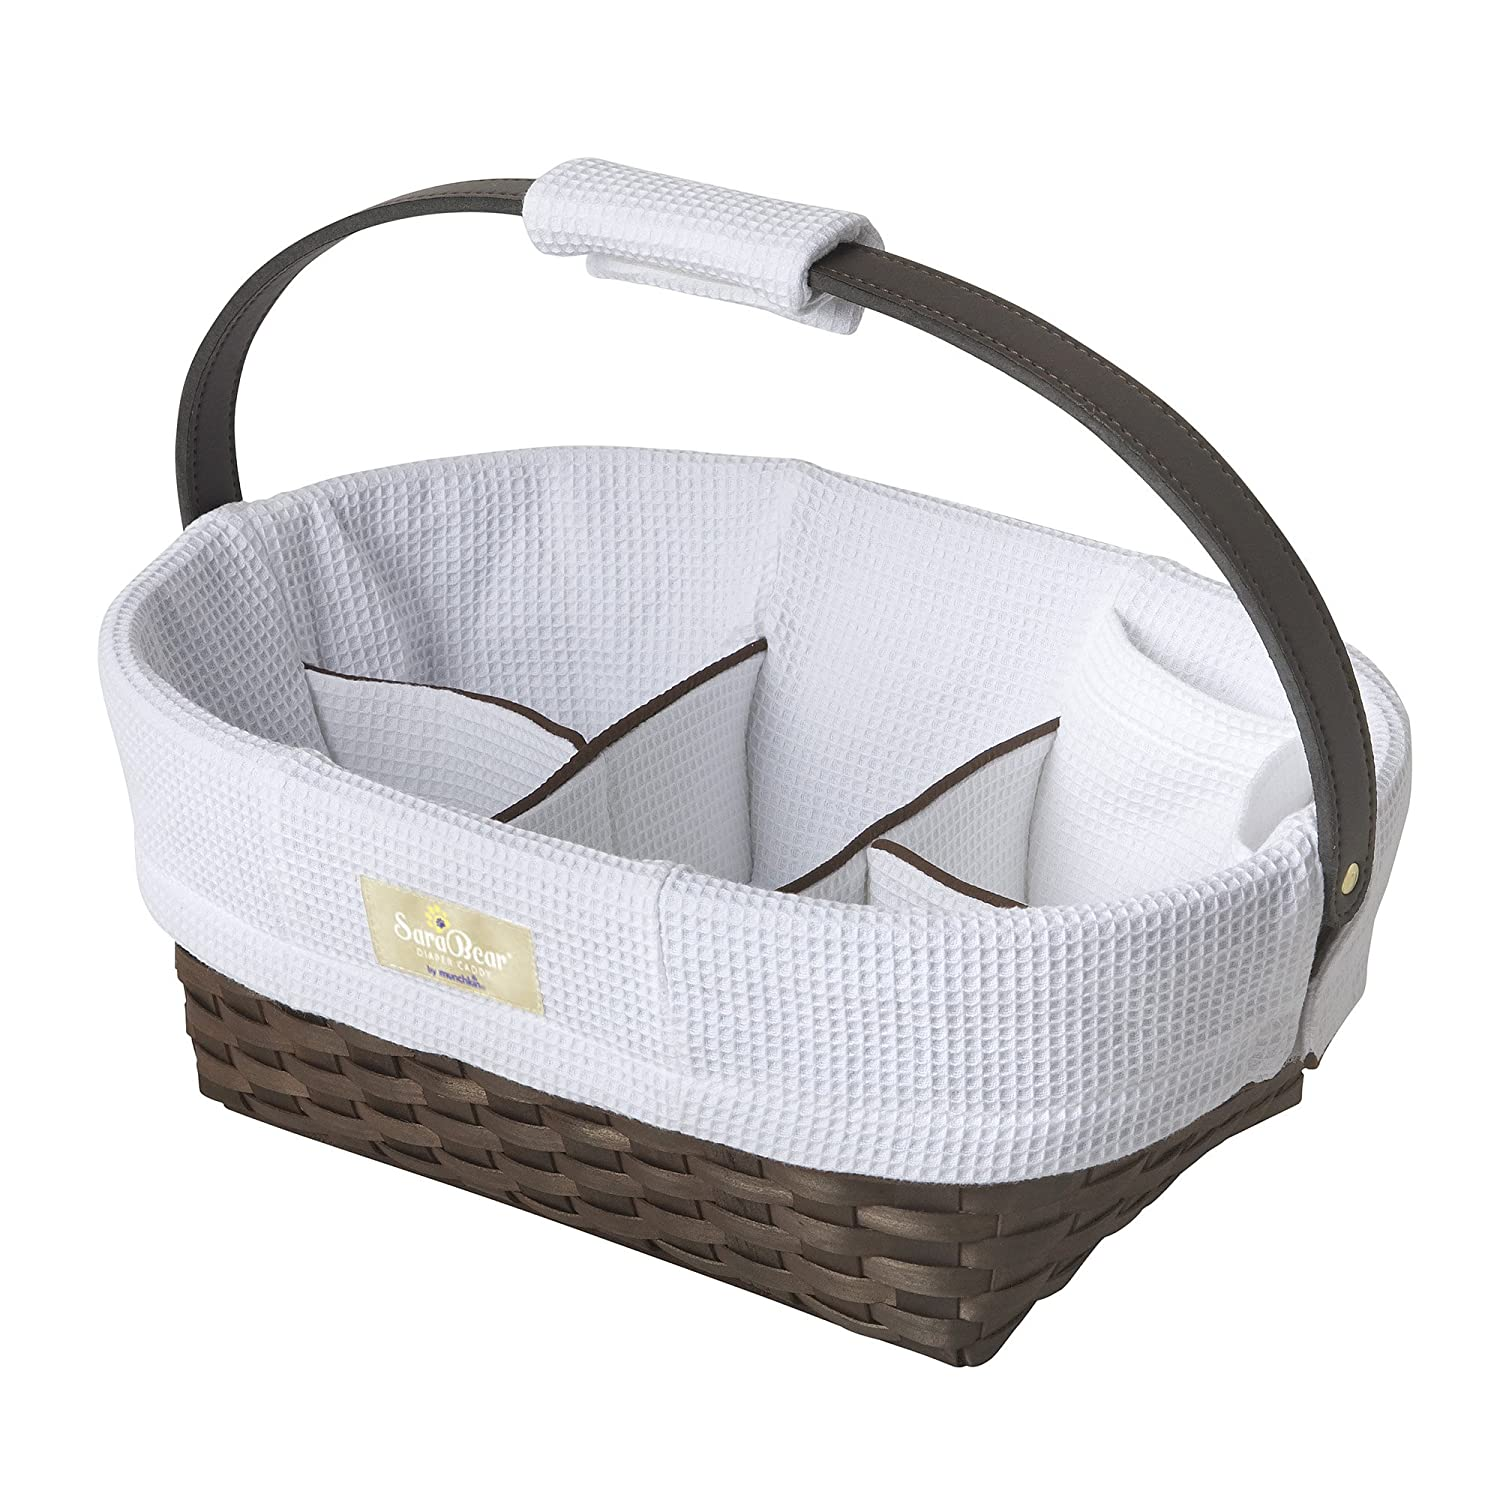 Amazon.com : Munchkin Portable Diaper Caddy, White : Nursery Storage ...